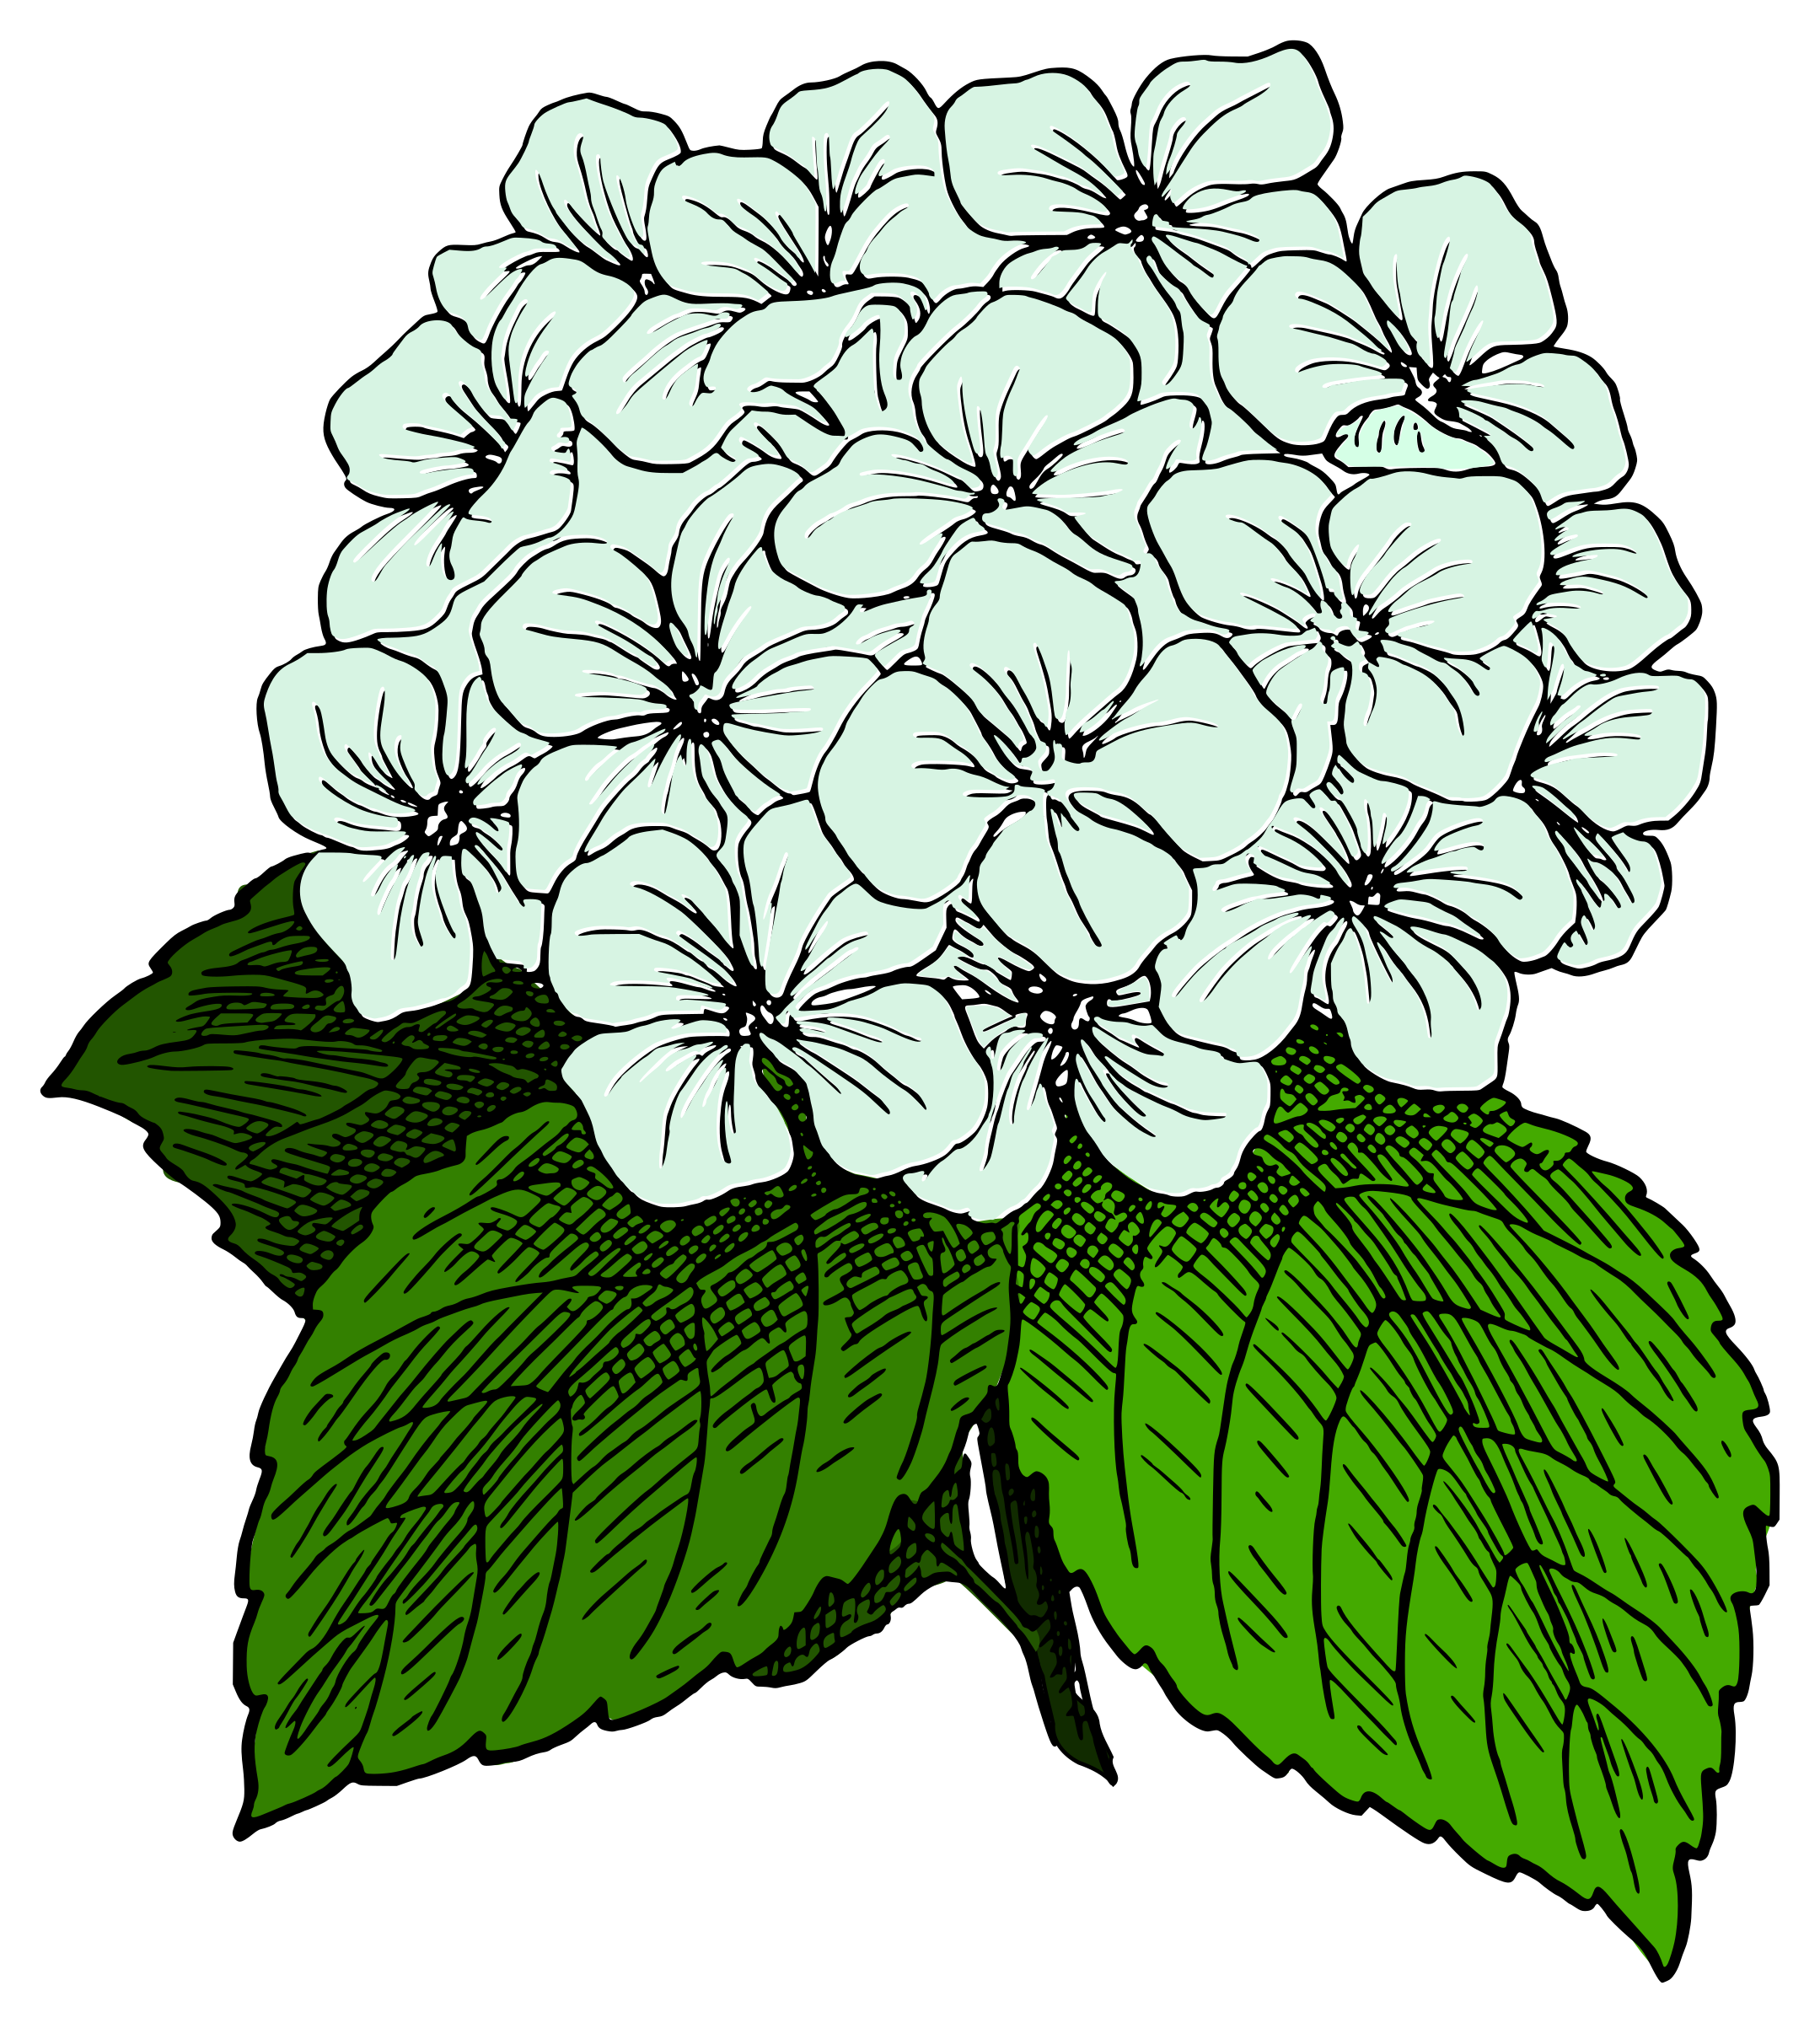 black and white download Hydrangea clipart green hydrangea. Image result for black